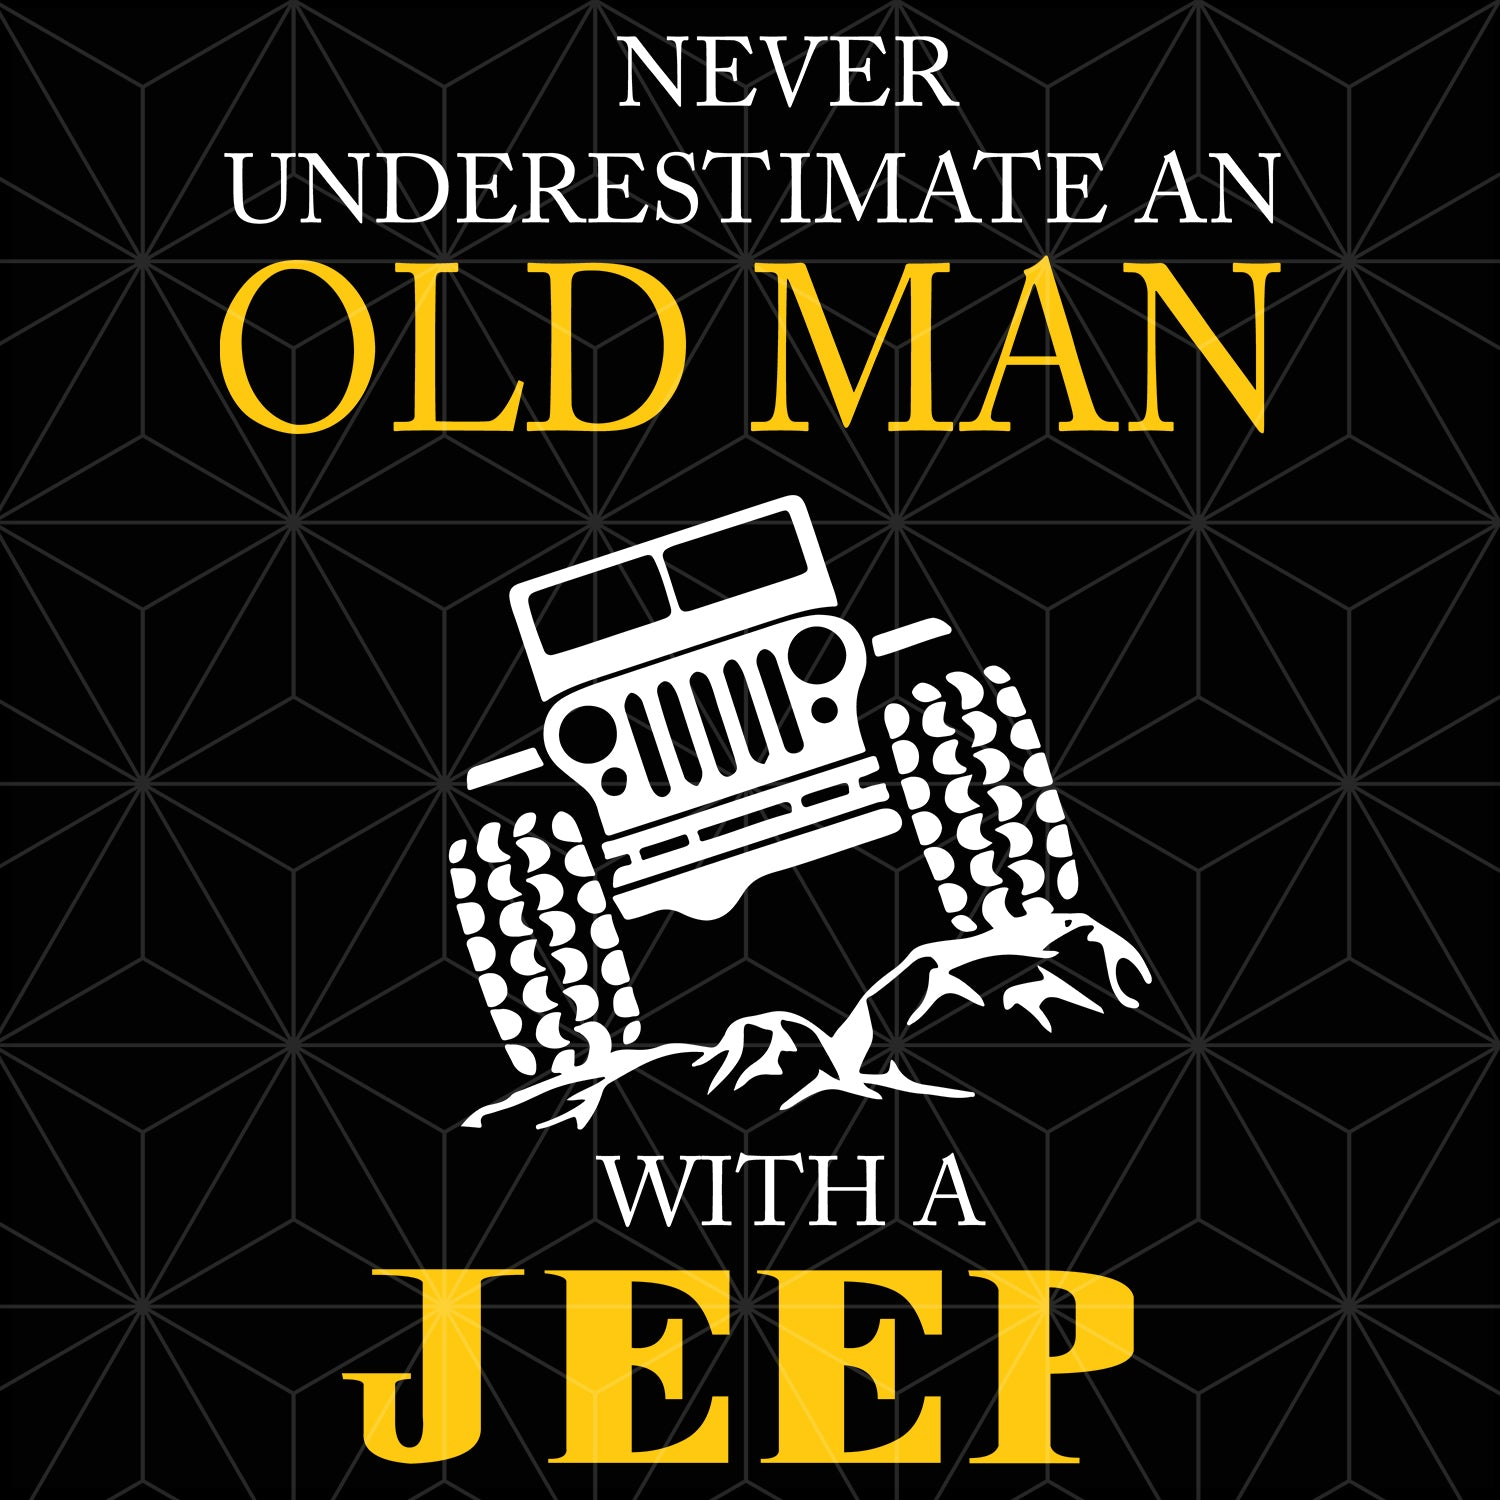 Never underestimate an old man with jeep svg,jeep svg,jeep clipart, jeep cut file, jeep svg files, jeep lover gift, jeep decal, jeep truck svg, jeep shirt,jeep truck shirt, jeep truck print, jeep truck silhouette